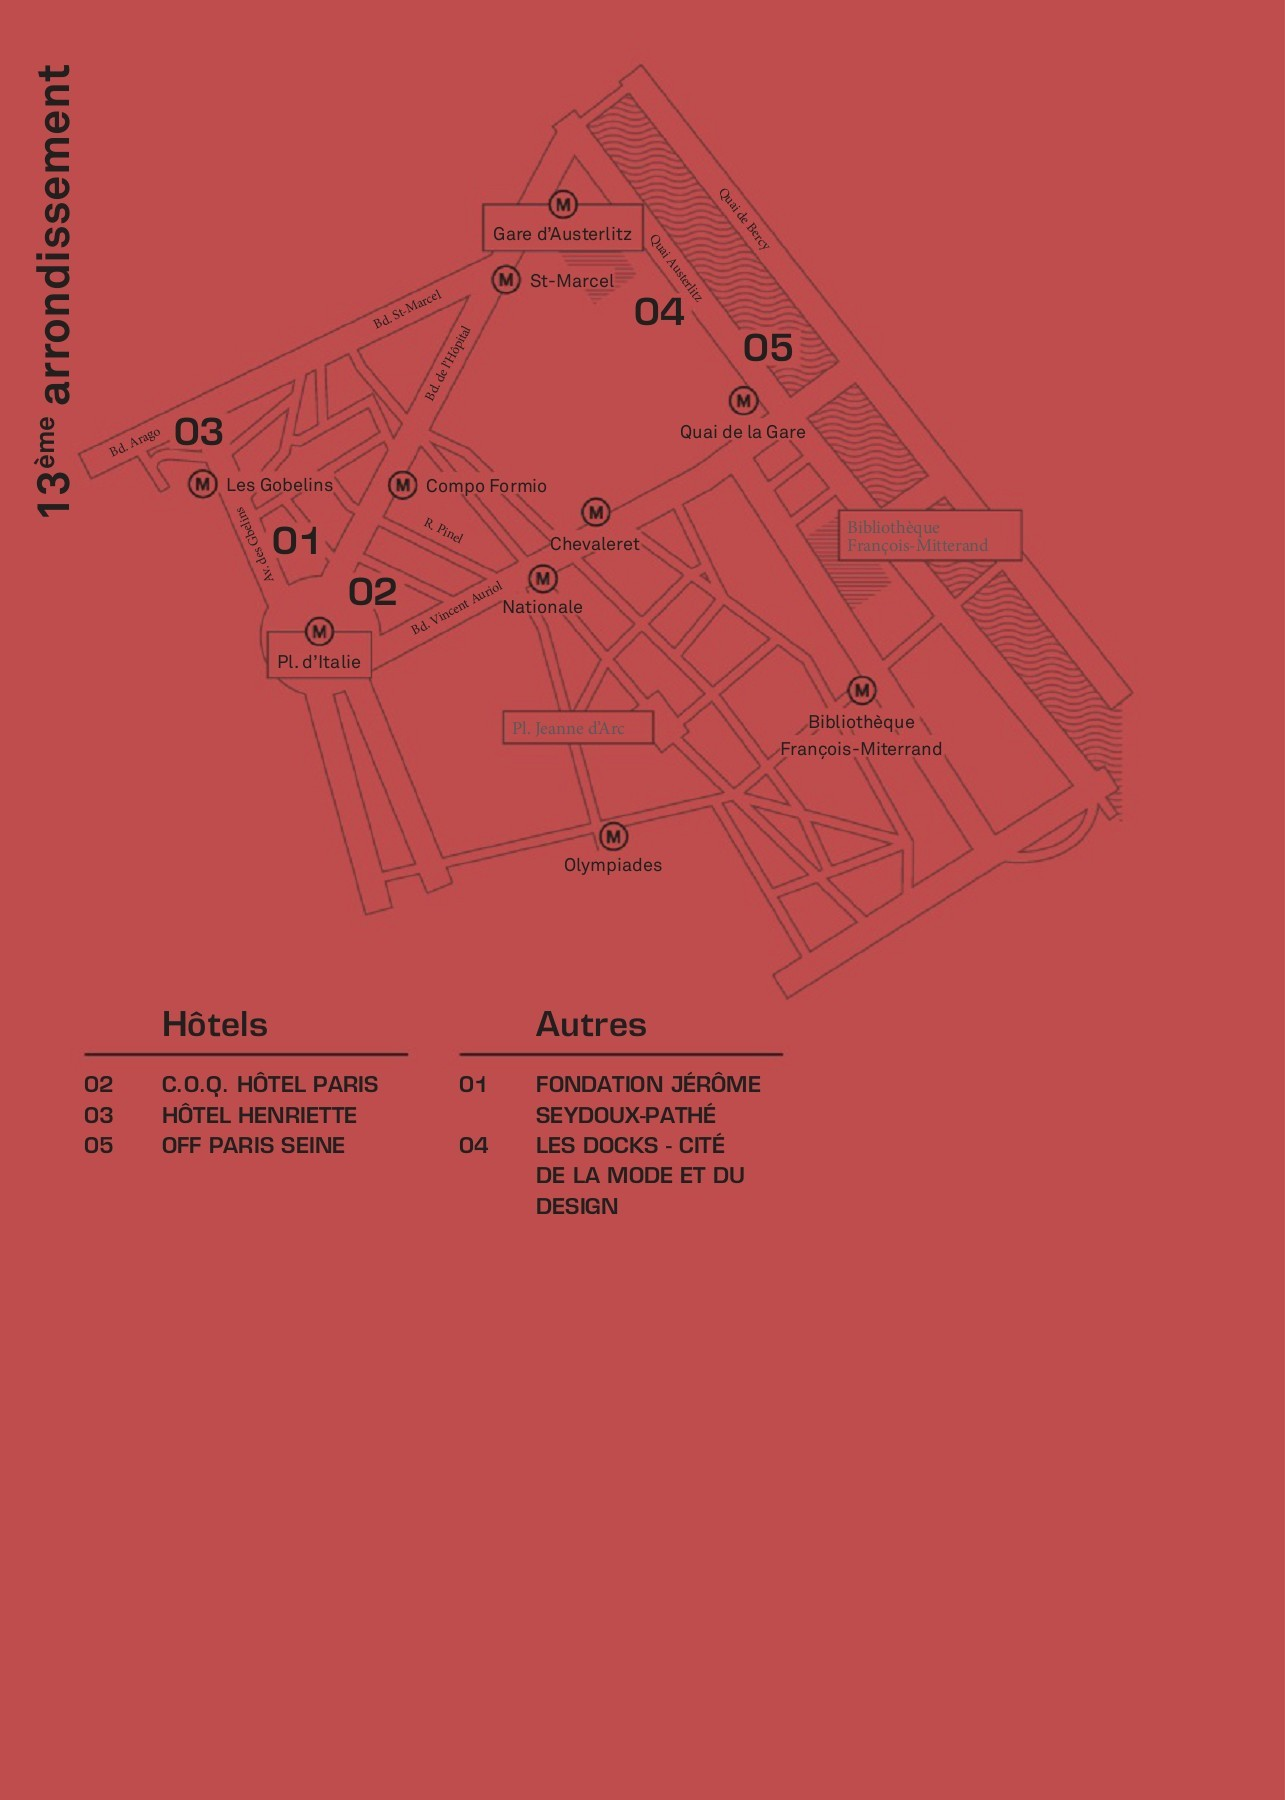 78 Boulevard Bourdon Neuilly Sur Seine 2019-04-01 intramuros-paris design guide-flip book pages 201